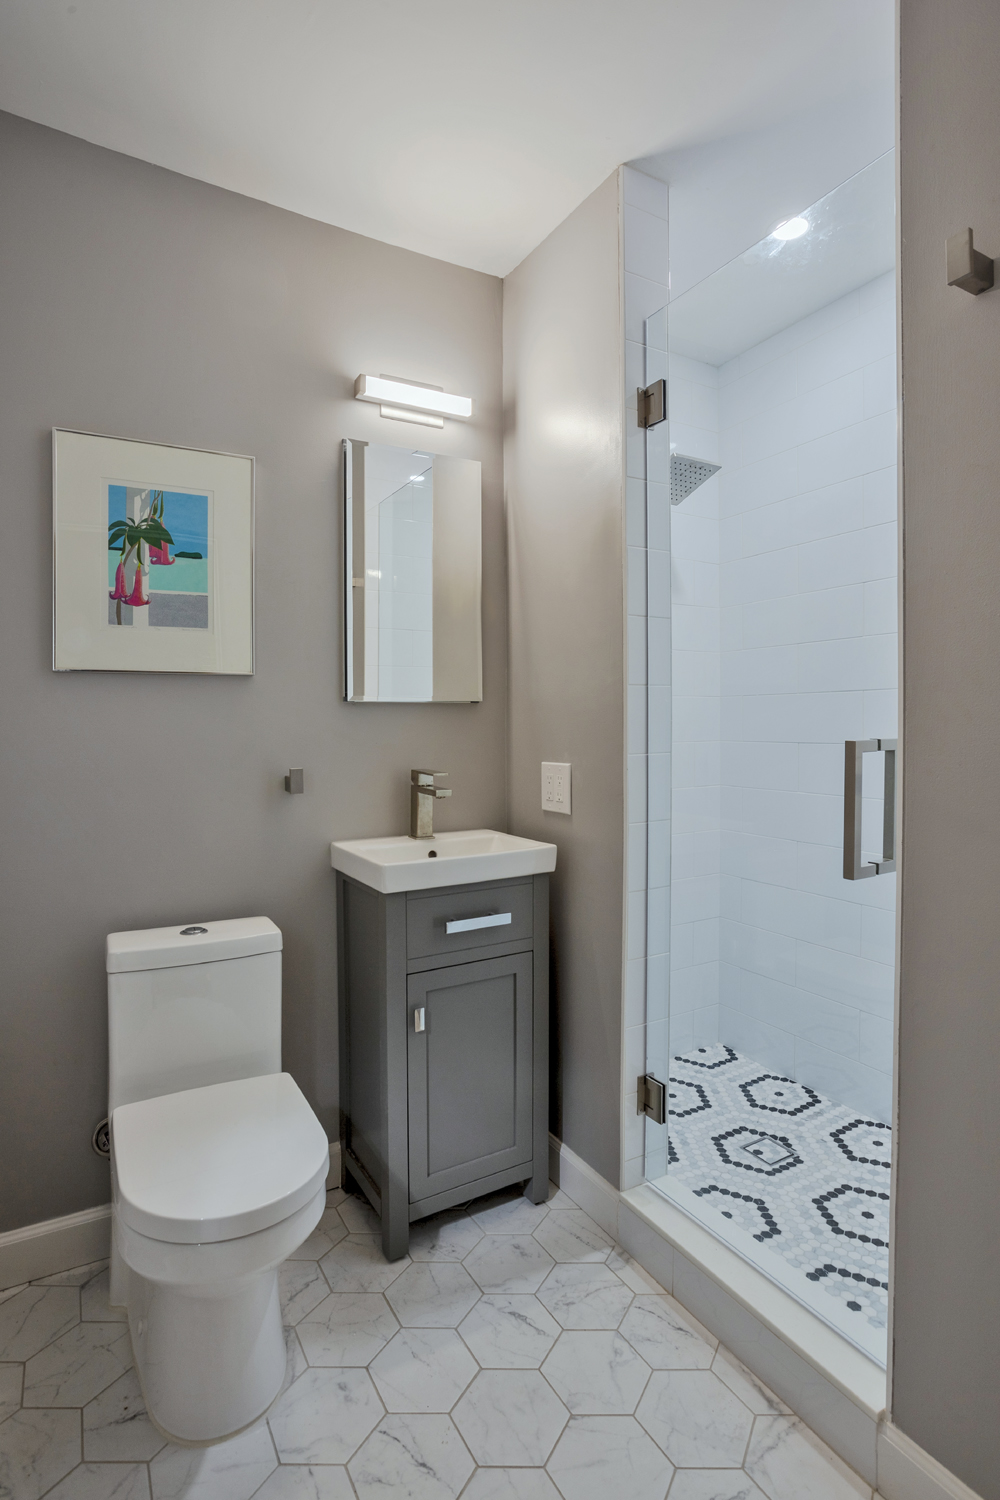 #36 Quintana - GBath 1 - Golden Construction Remodel AFTER